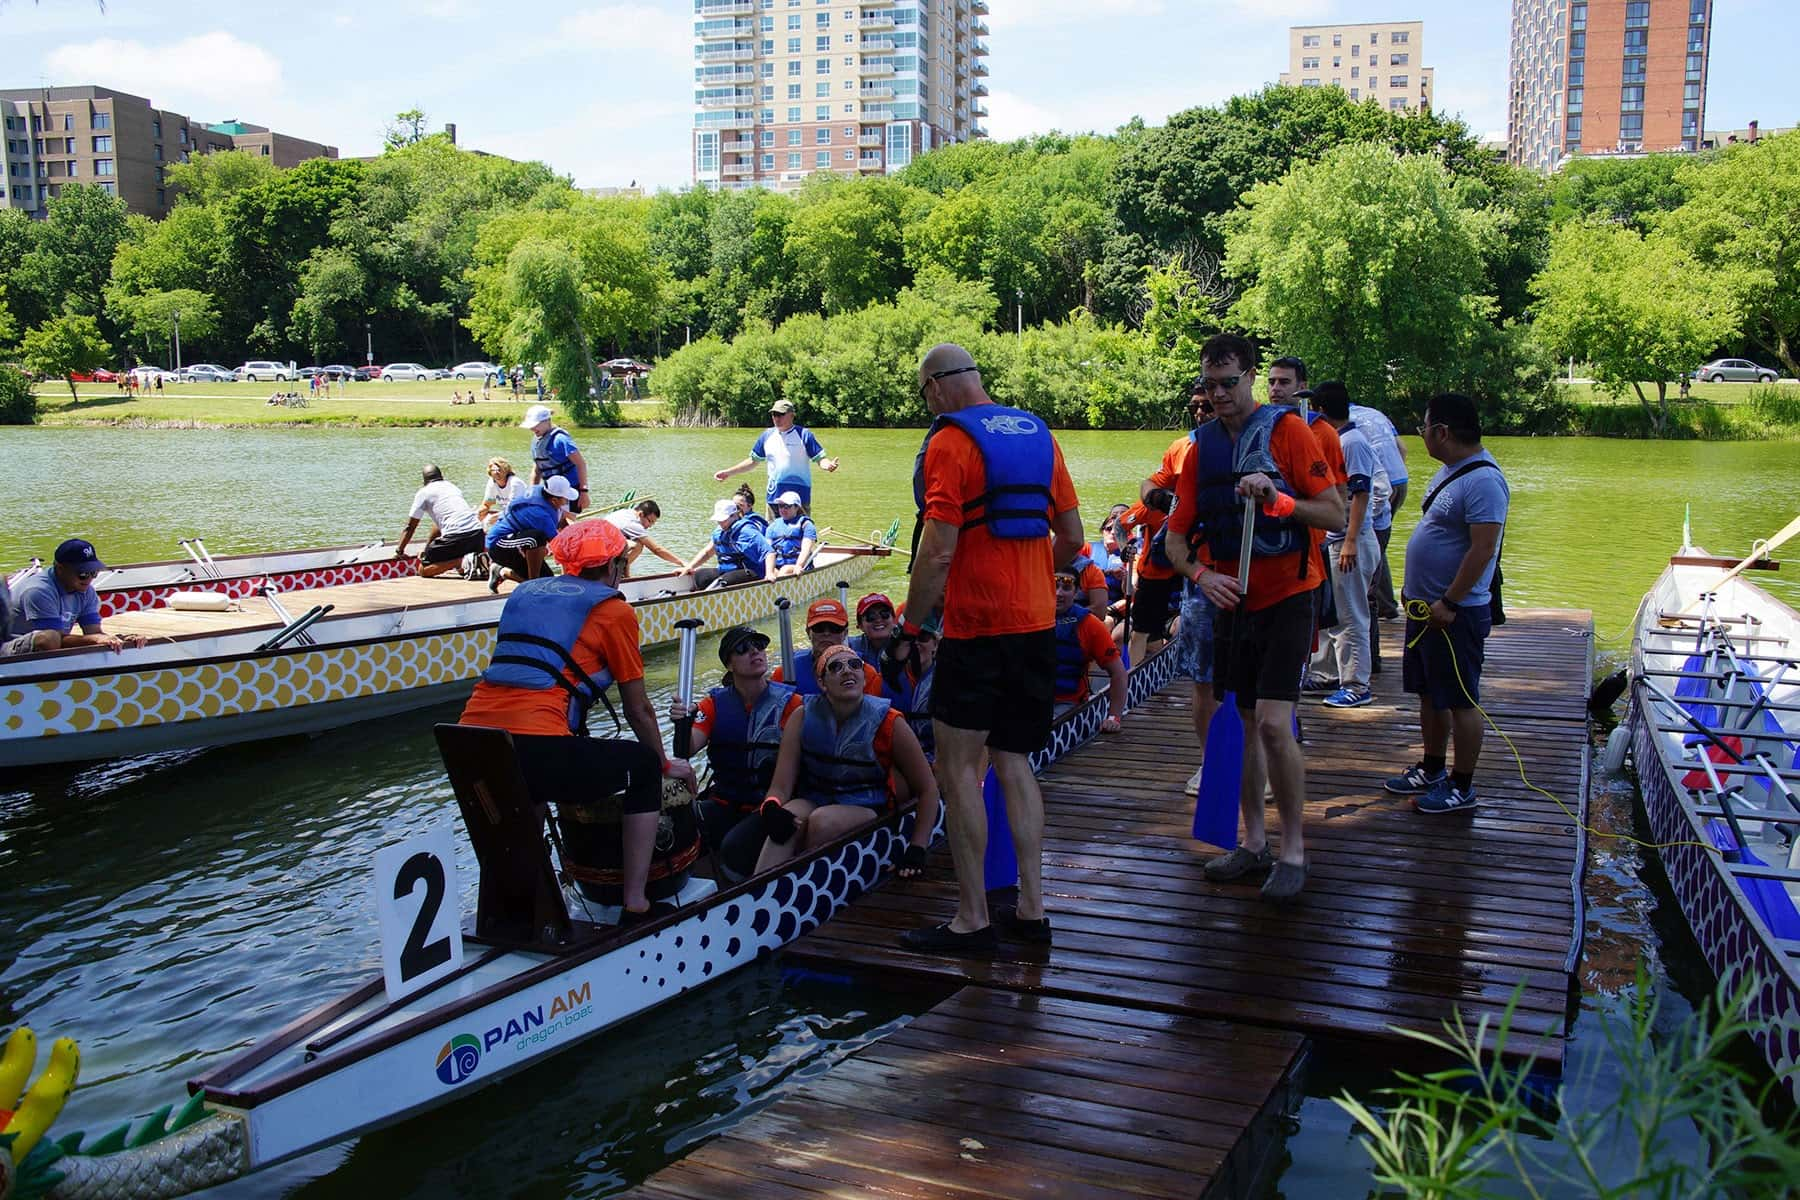 080116_dragonboat_album_01_03